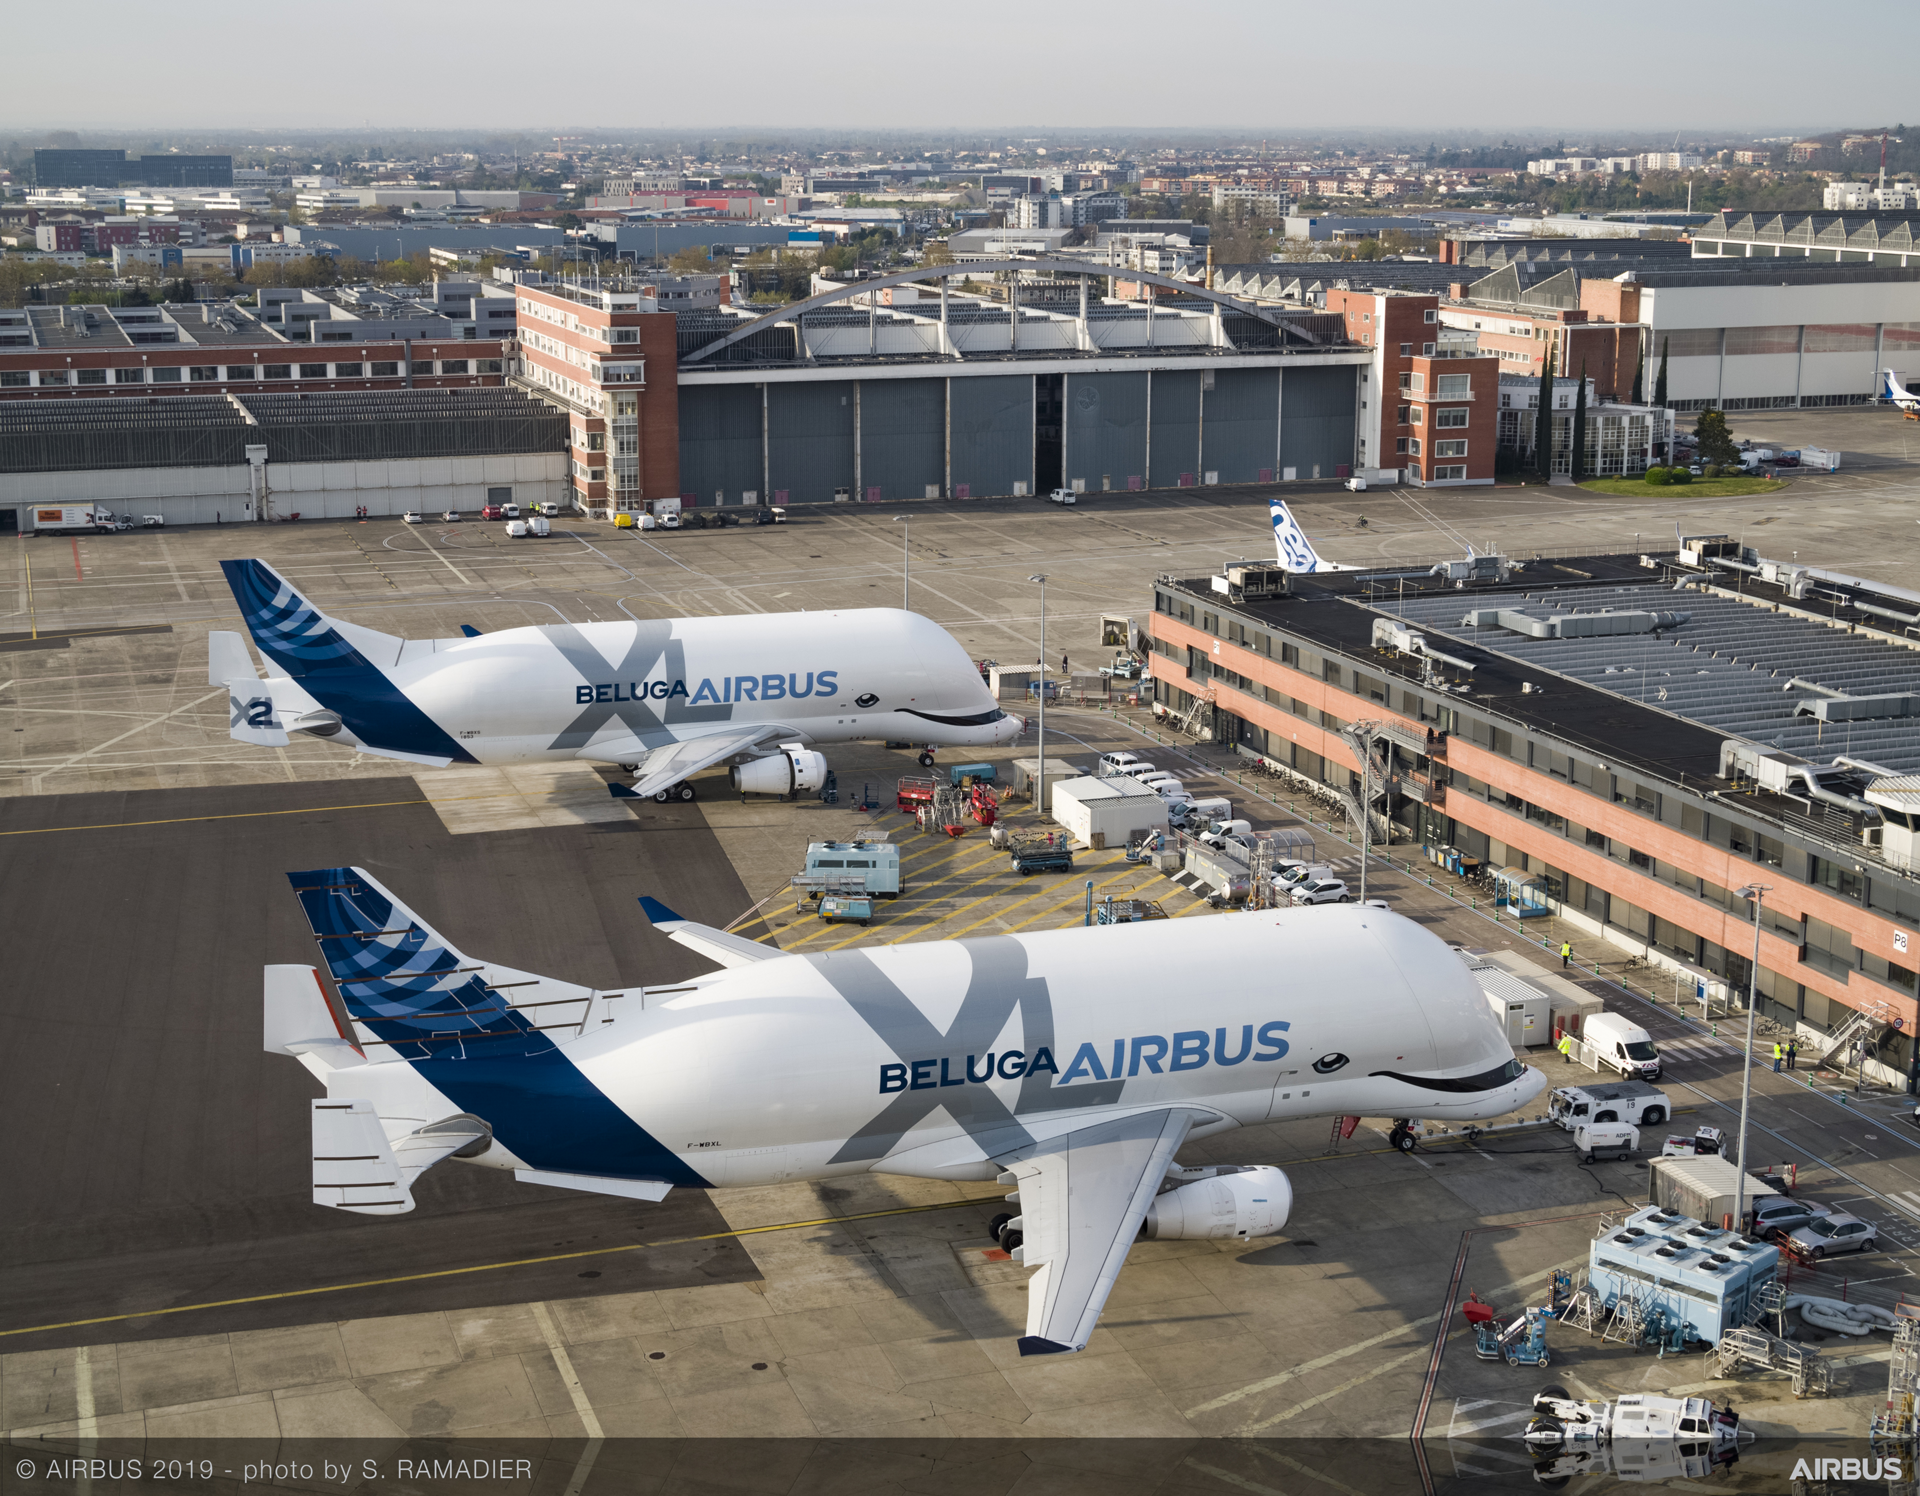 The first two BelugaXLs – highly-modified A330 jetliners tailored to carry large airframe components within the Airbus aircraft production network – meet up in Toulouse, France